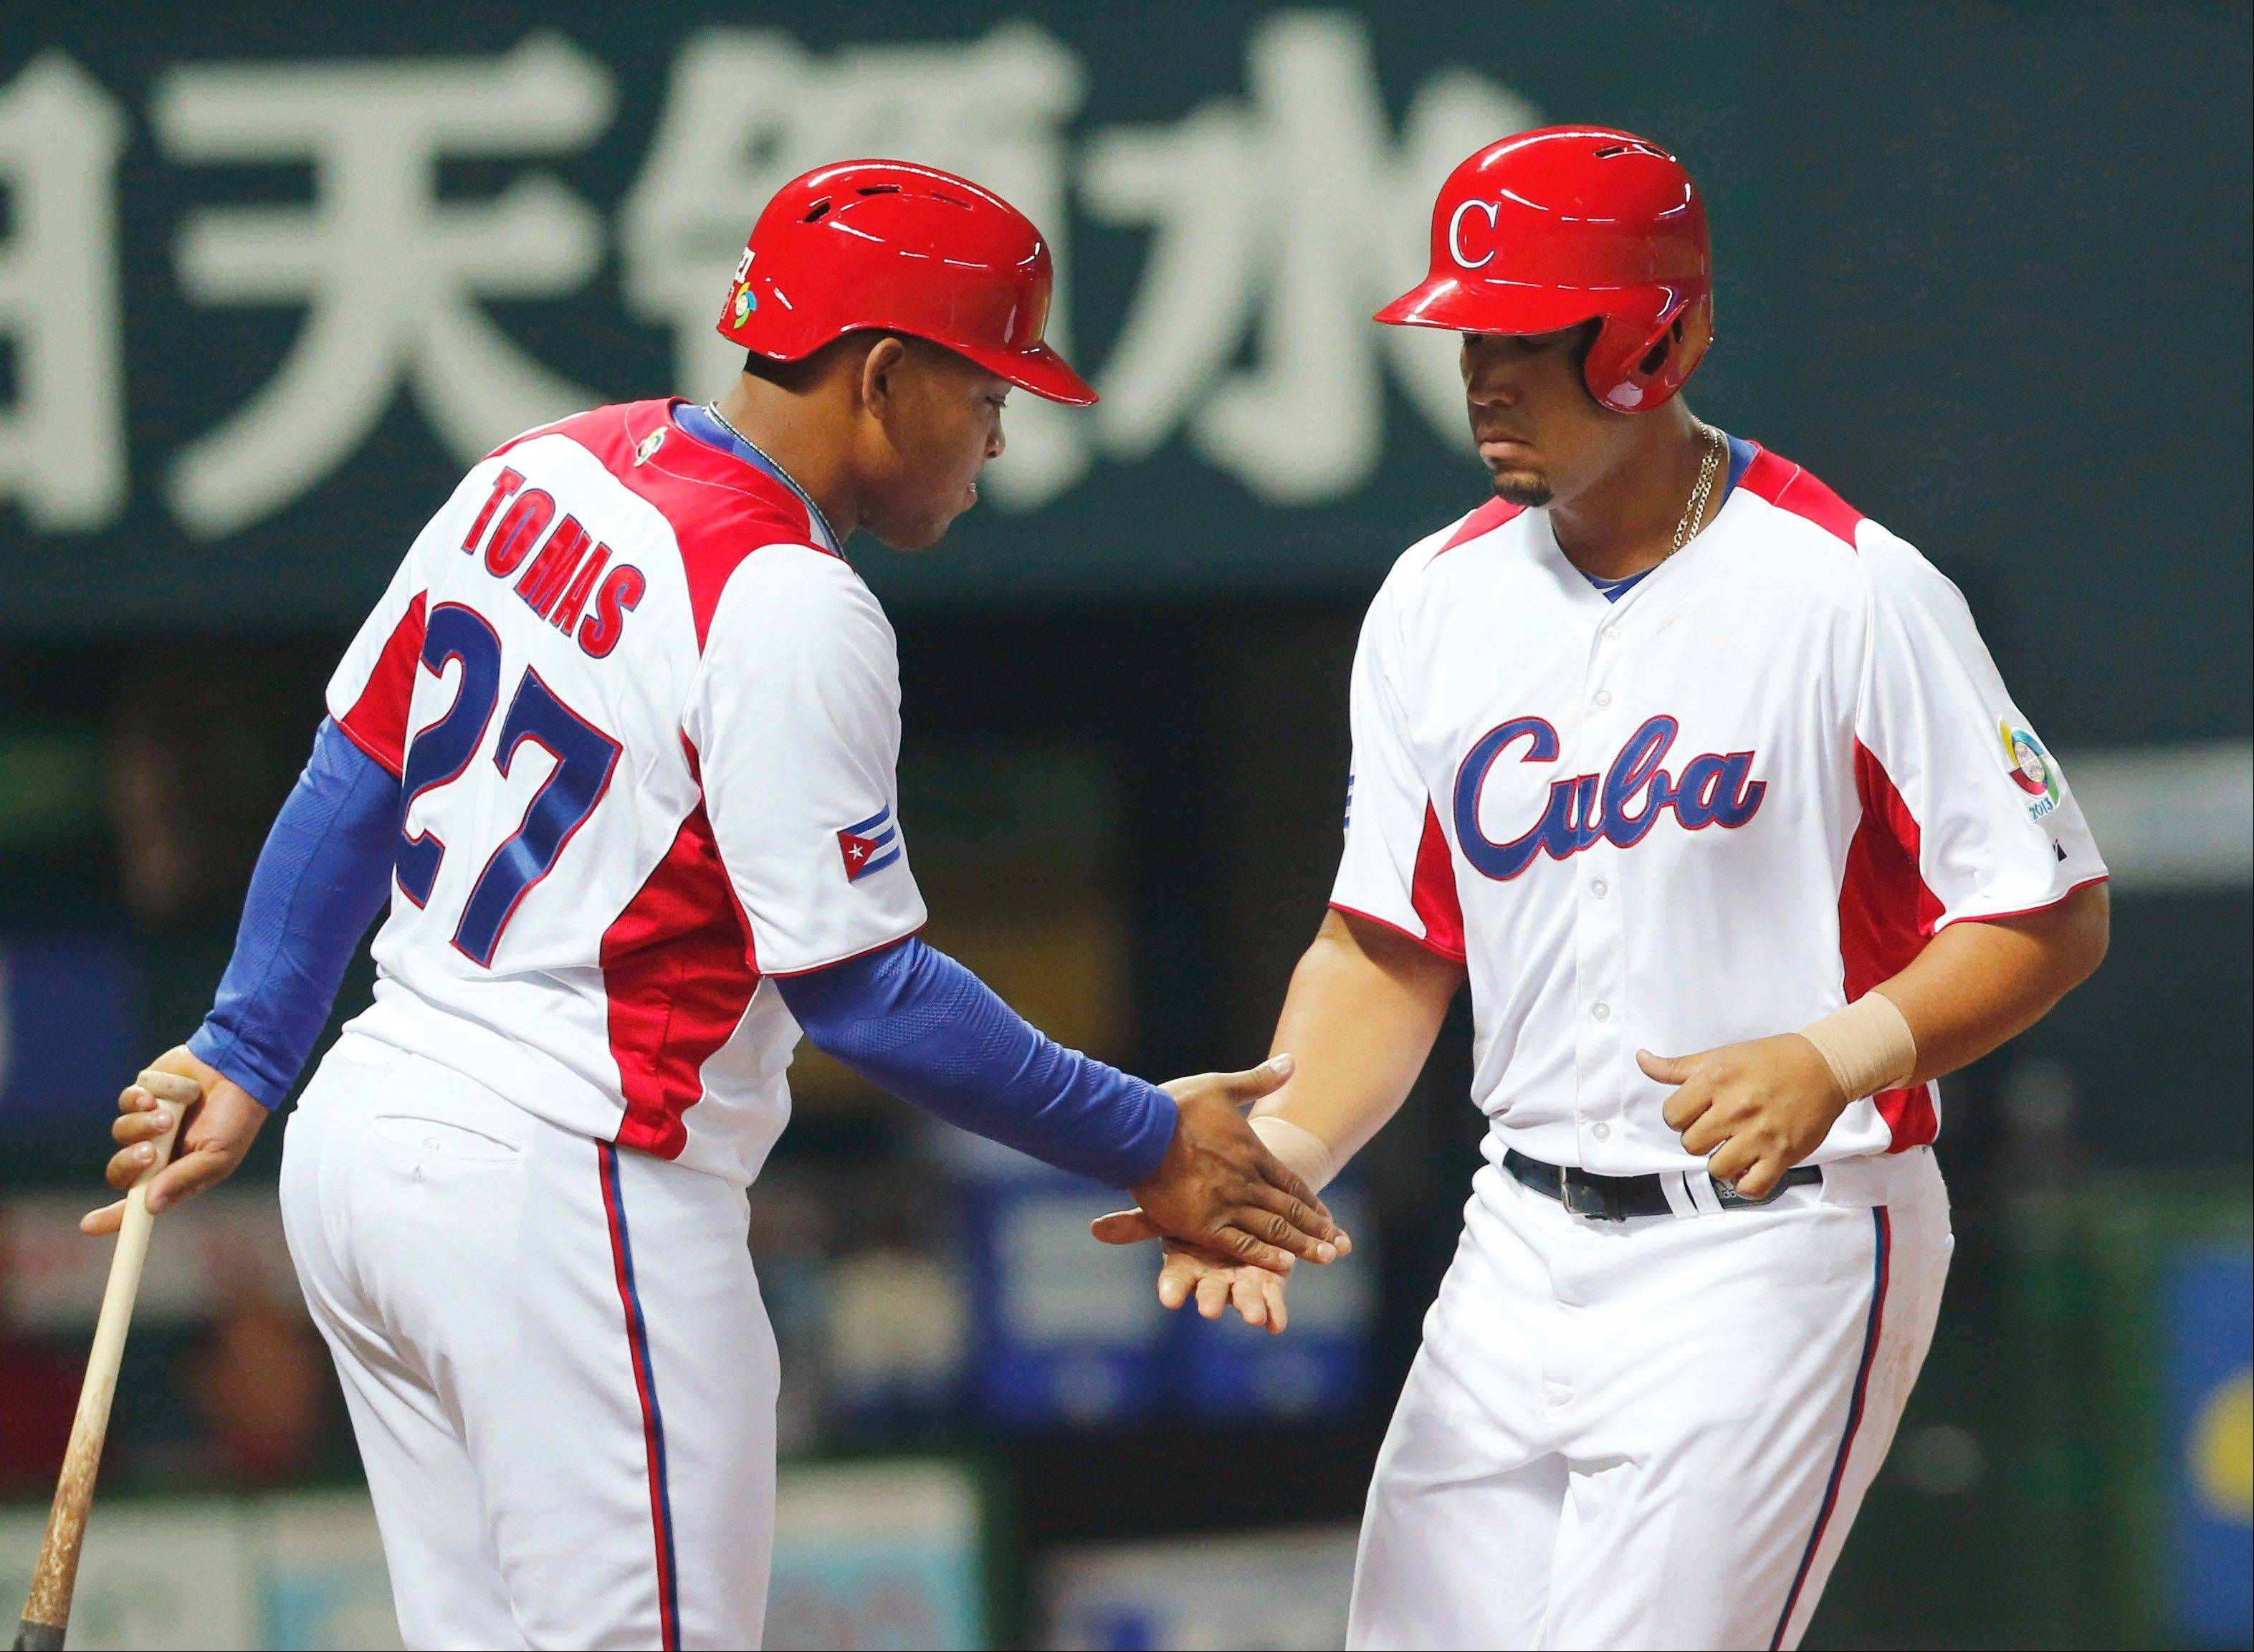 Cuba's first baseman Jose Abreu, right, is celebrated by teammate Tomas Yasman at home after hitting a grand slam off China's Liu Yu in the fifth inning of their World Baseball Classic first round game in Fukuoka, Japan, Monday, March 4, 2013.